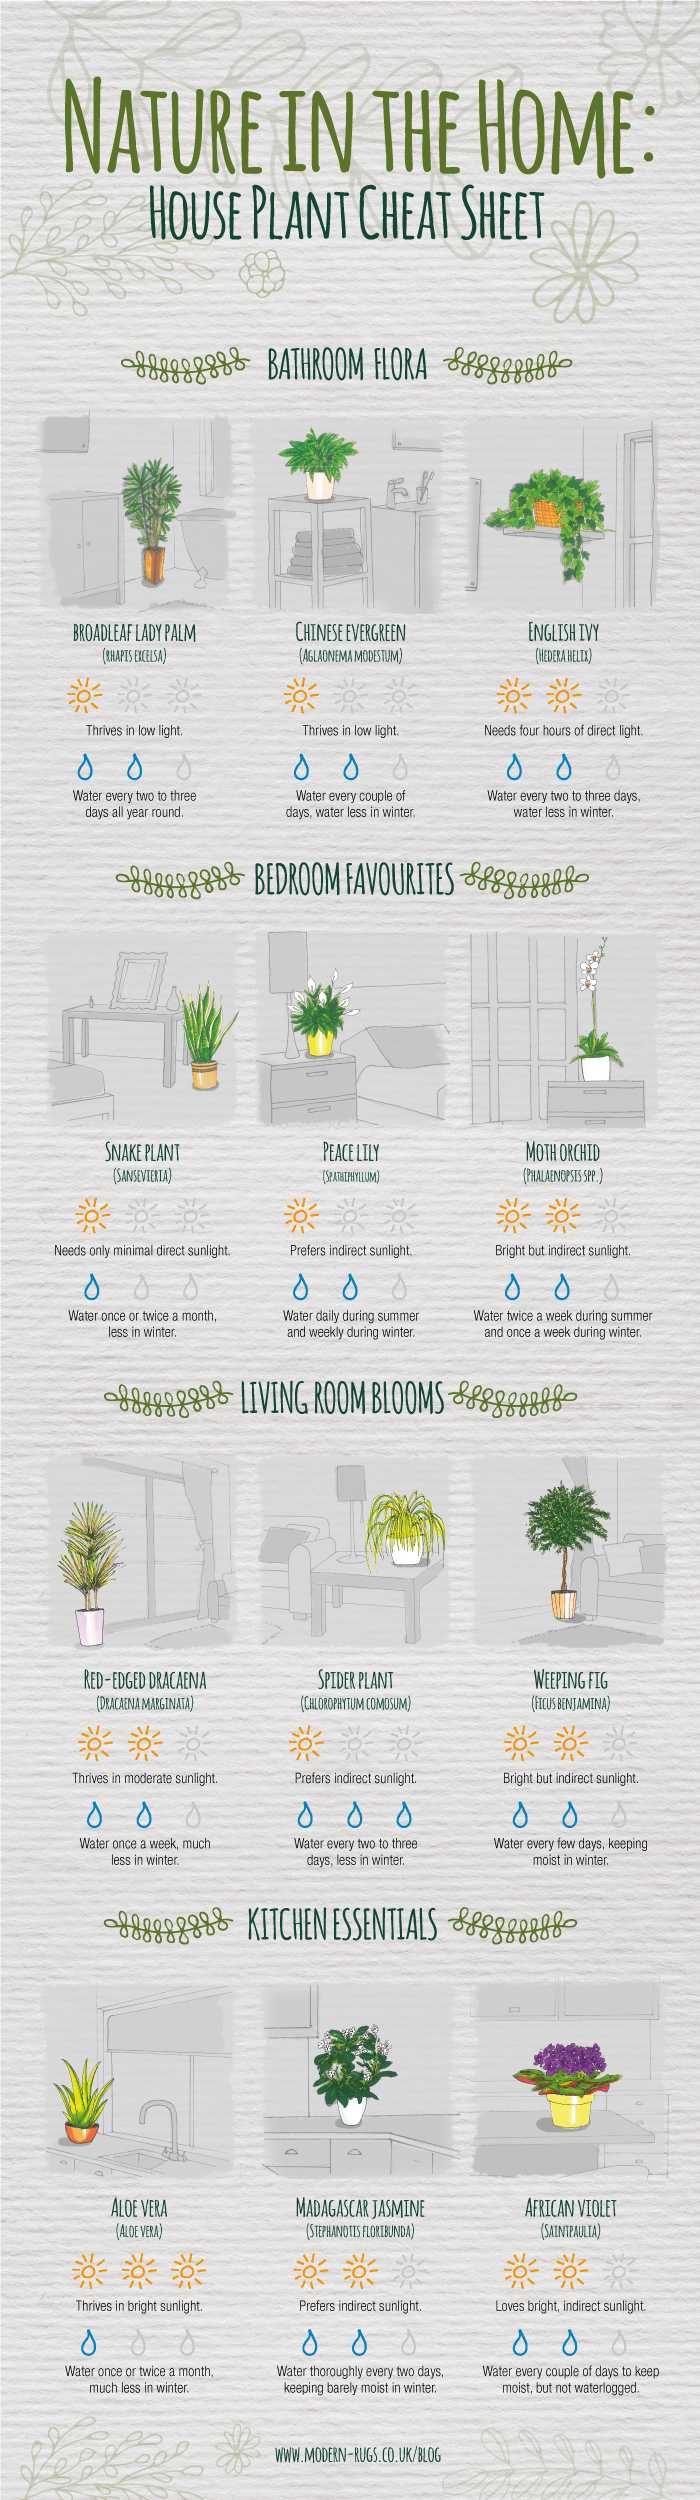 indoor-plant-care-cheatsheet-full-700px